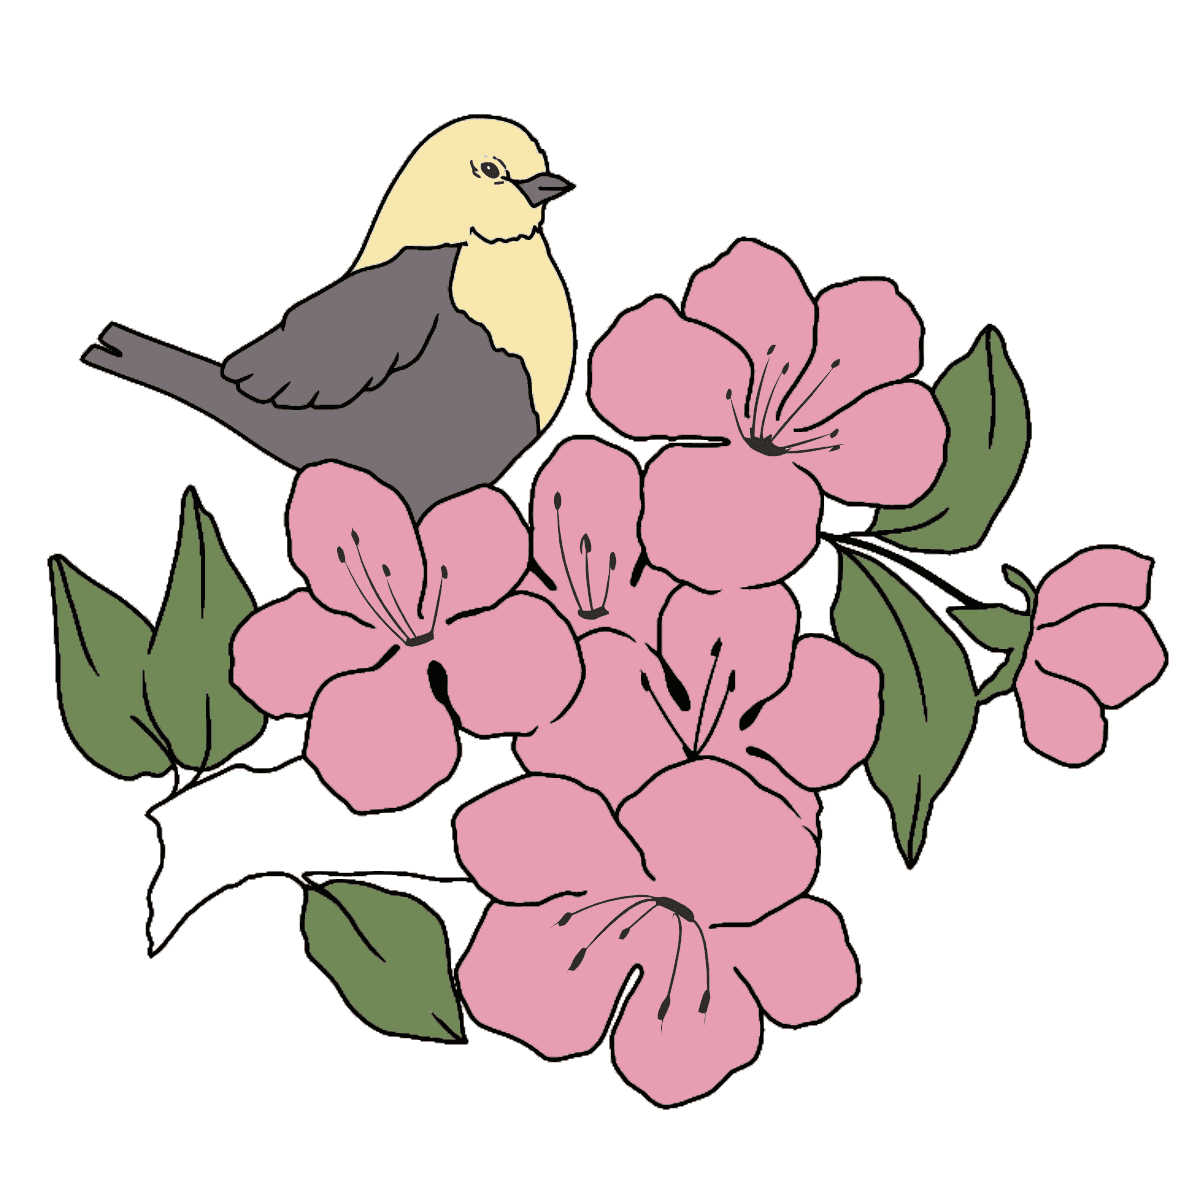 Summer Coloring Page - A Bird is Chirping on a Branch with Flowers